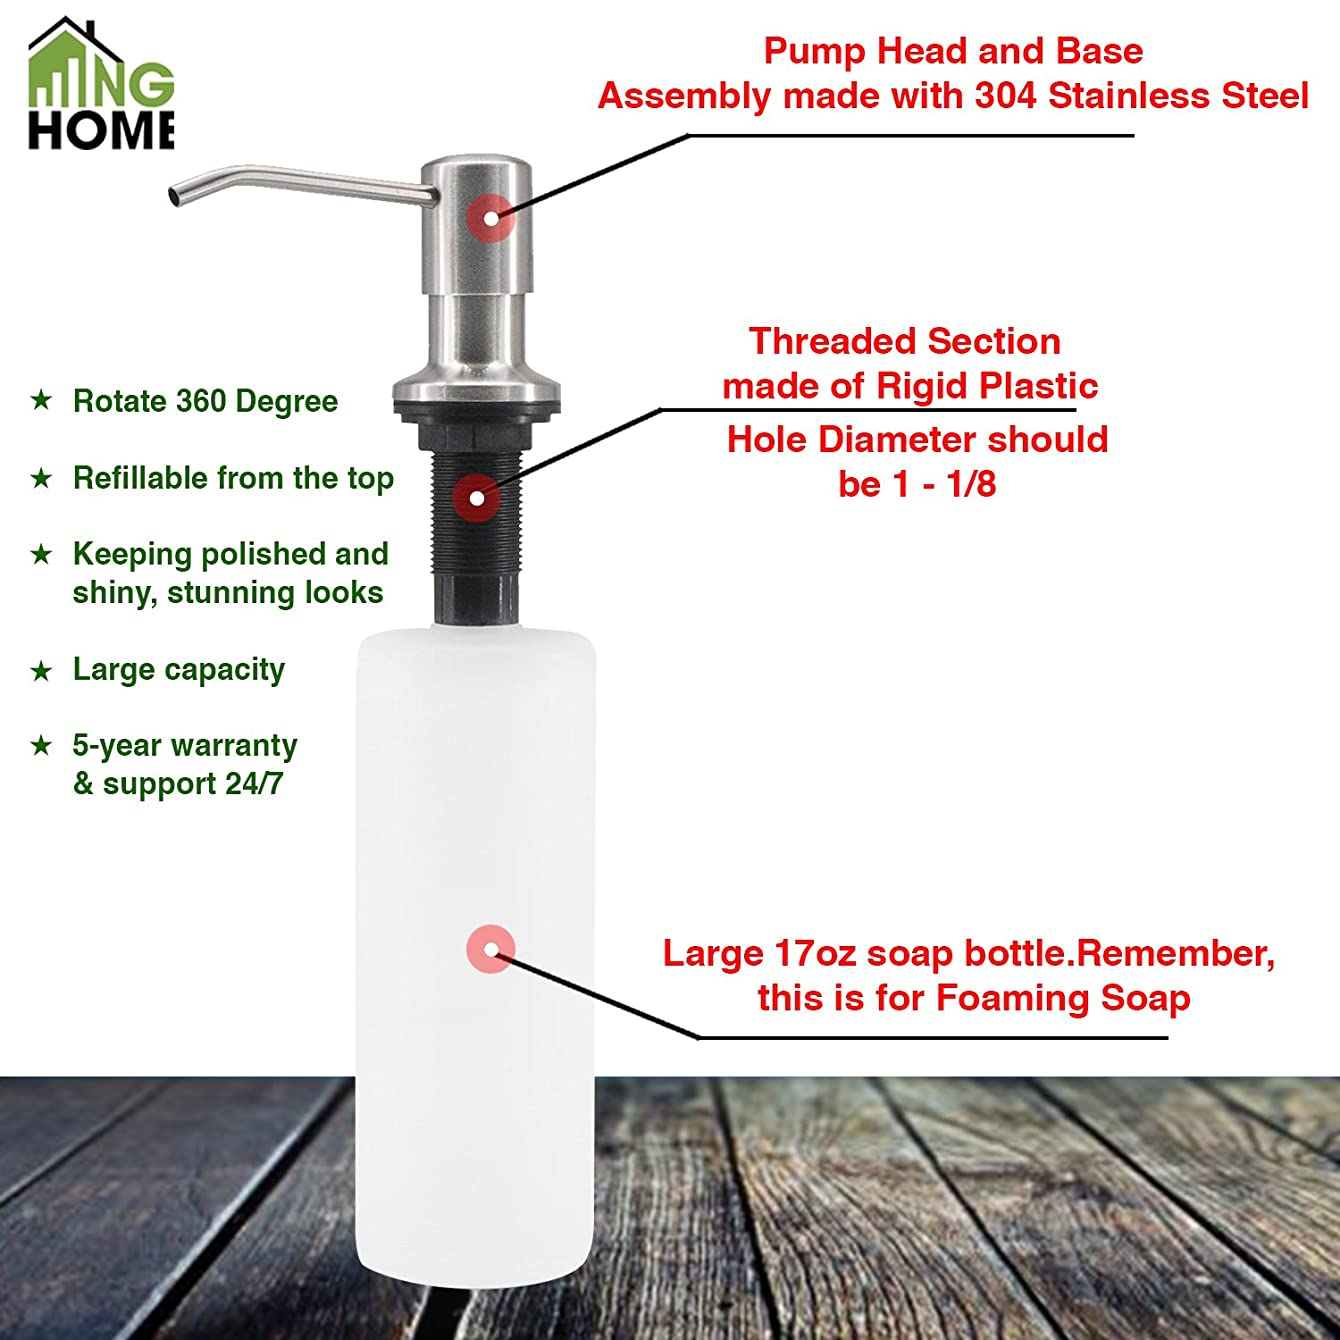 NG Home Durable 304 Stainless Steel Built in Pump Kitchen Sink Soap Dispenser,17 OZ Bottle-3.15 Inch Threaded Tube for Thick Deck Installation-Easy refillable from above counter for kit